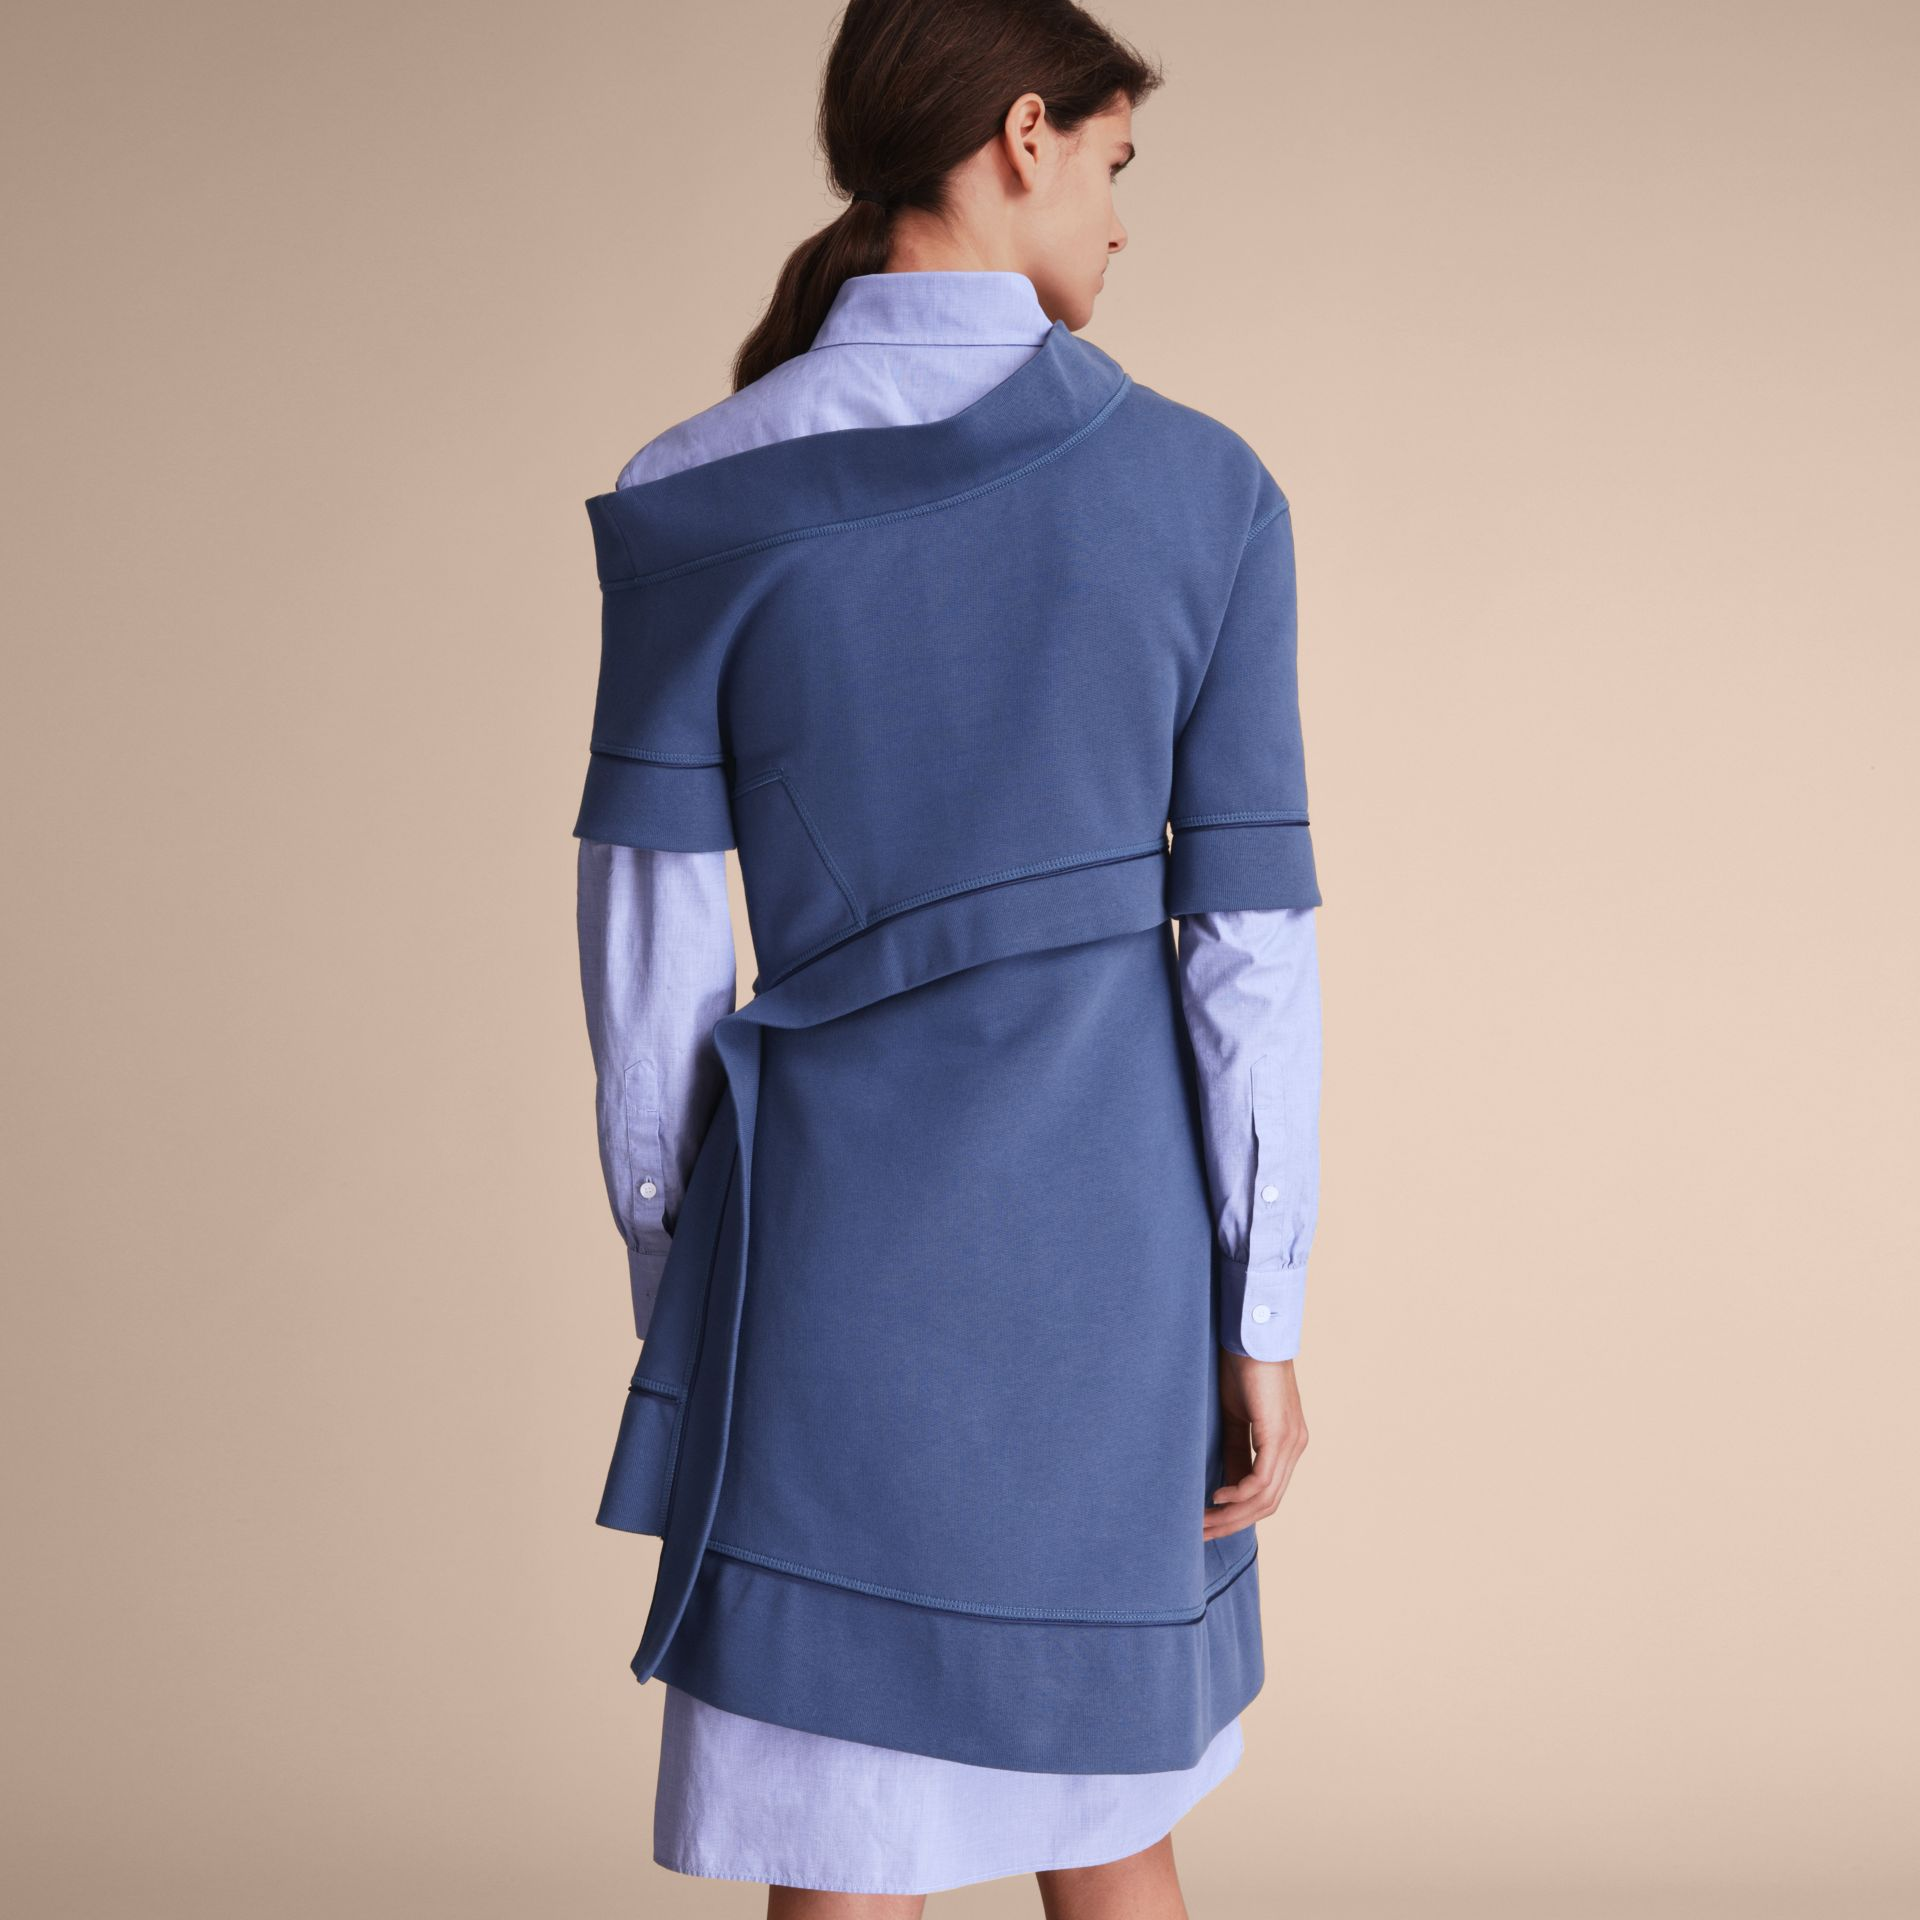 One-shoulder Sweatshirt Dress in Pewter Blue - Women | Burberry - gallery image 3